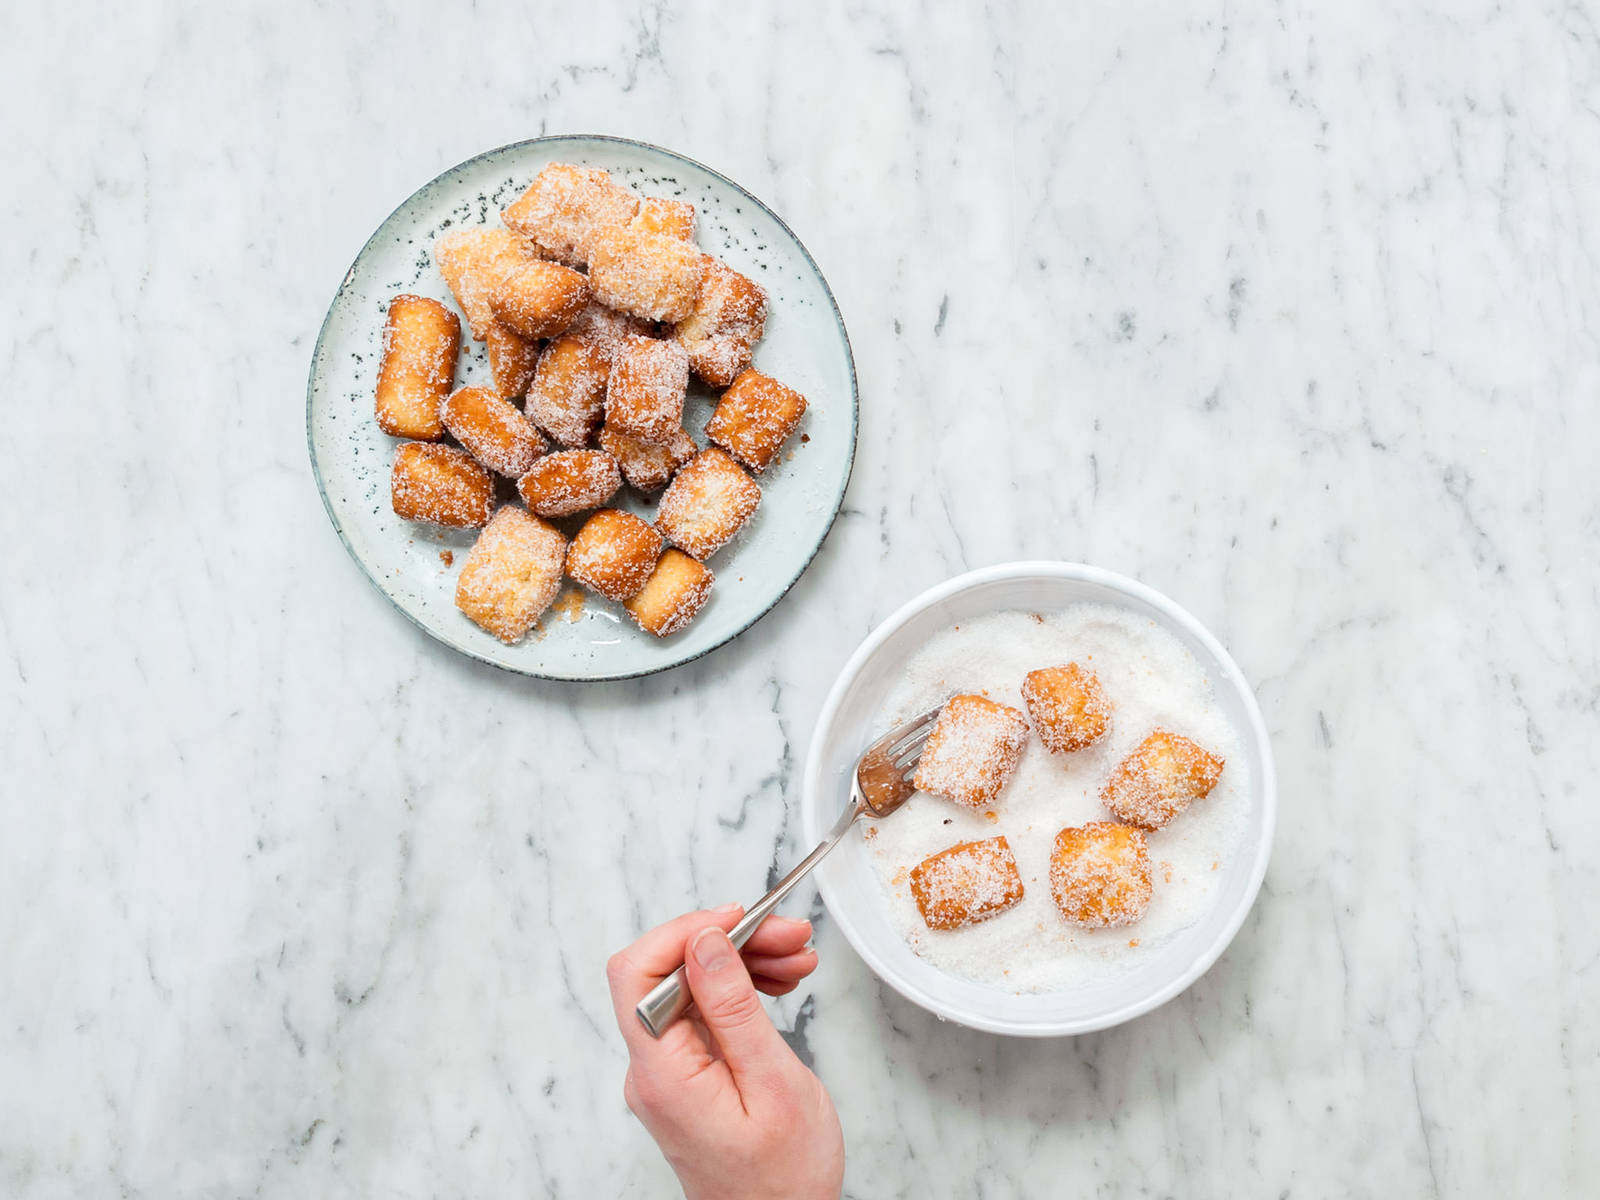 Transfer sugar onto a plate and roll deep-fried dough bites in it while they are still warm. Toss to coat. Repeat until all dough bites are completely sugar coated. Enjoy!